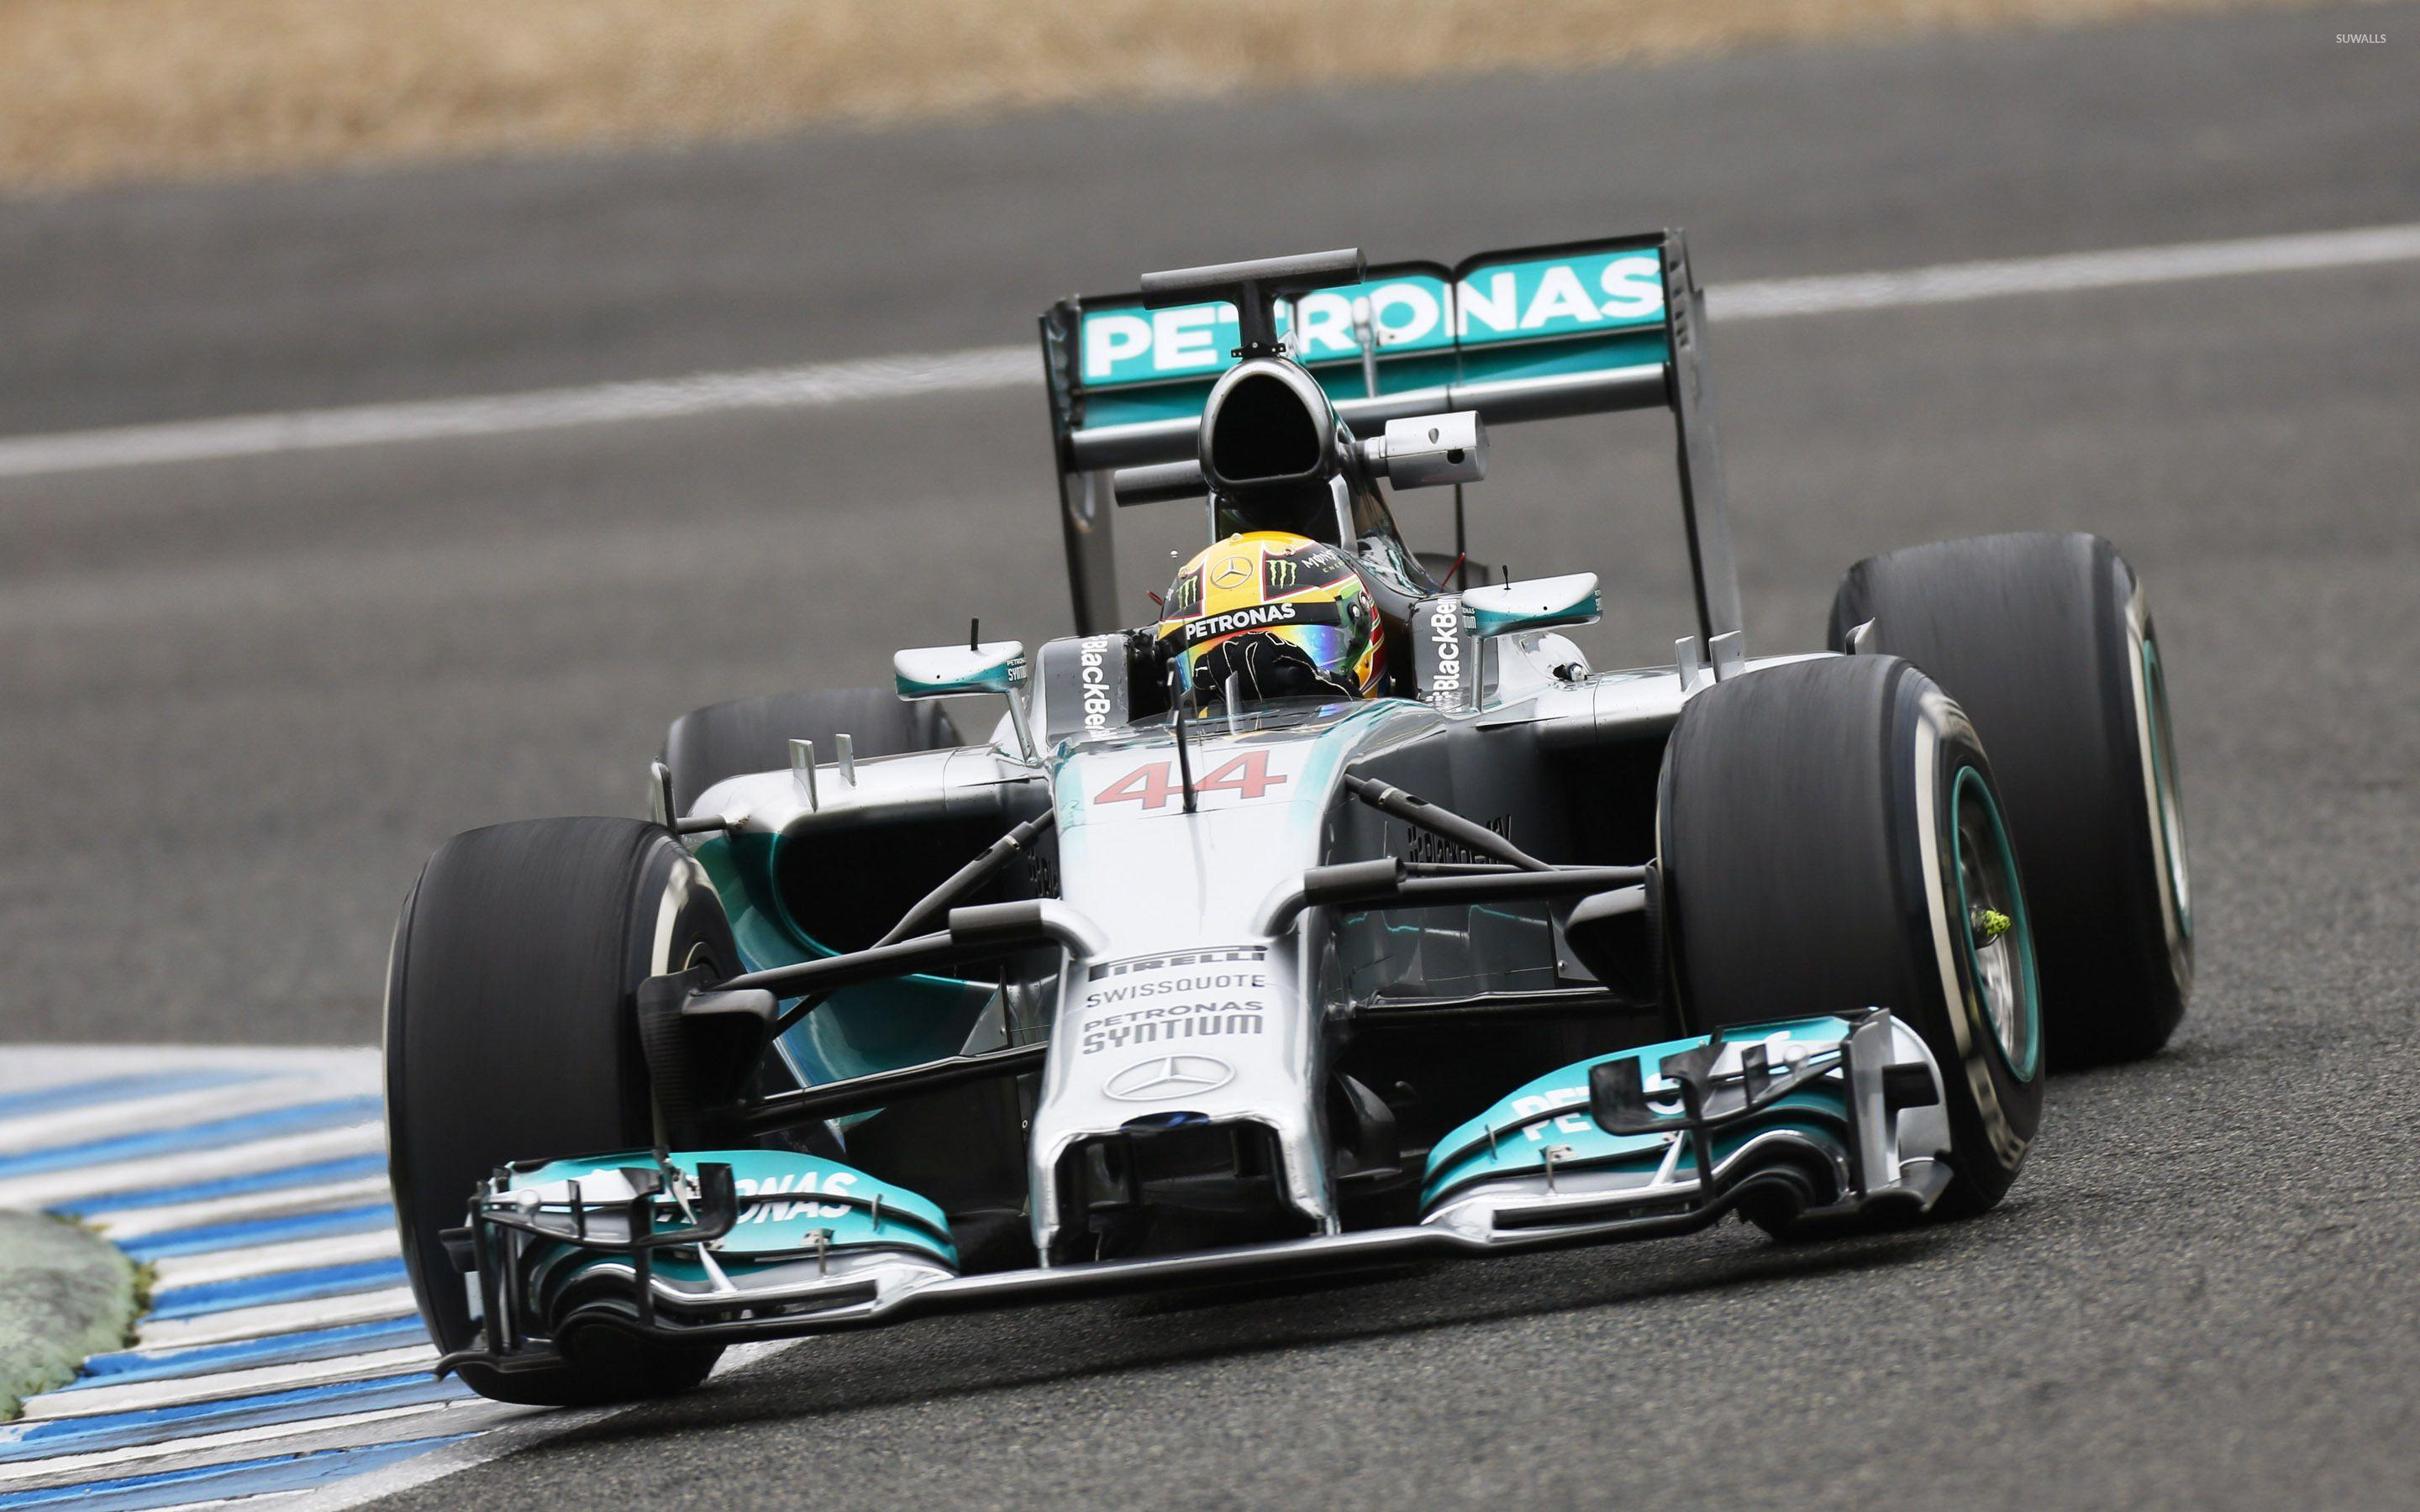 Mercedes AMG Petronas [2] wallpapers